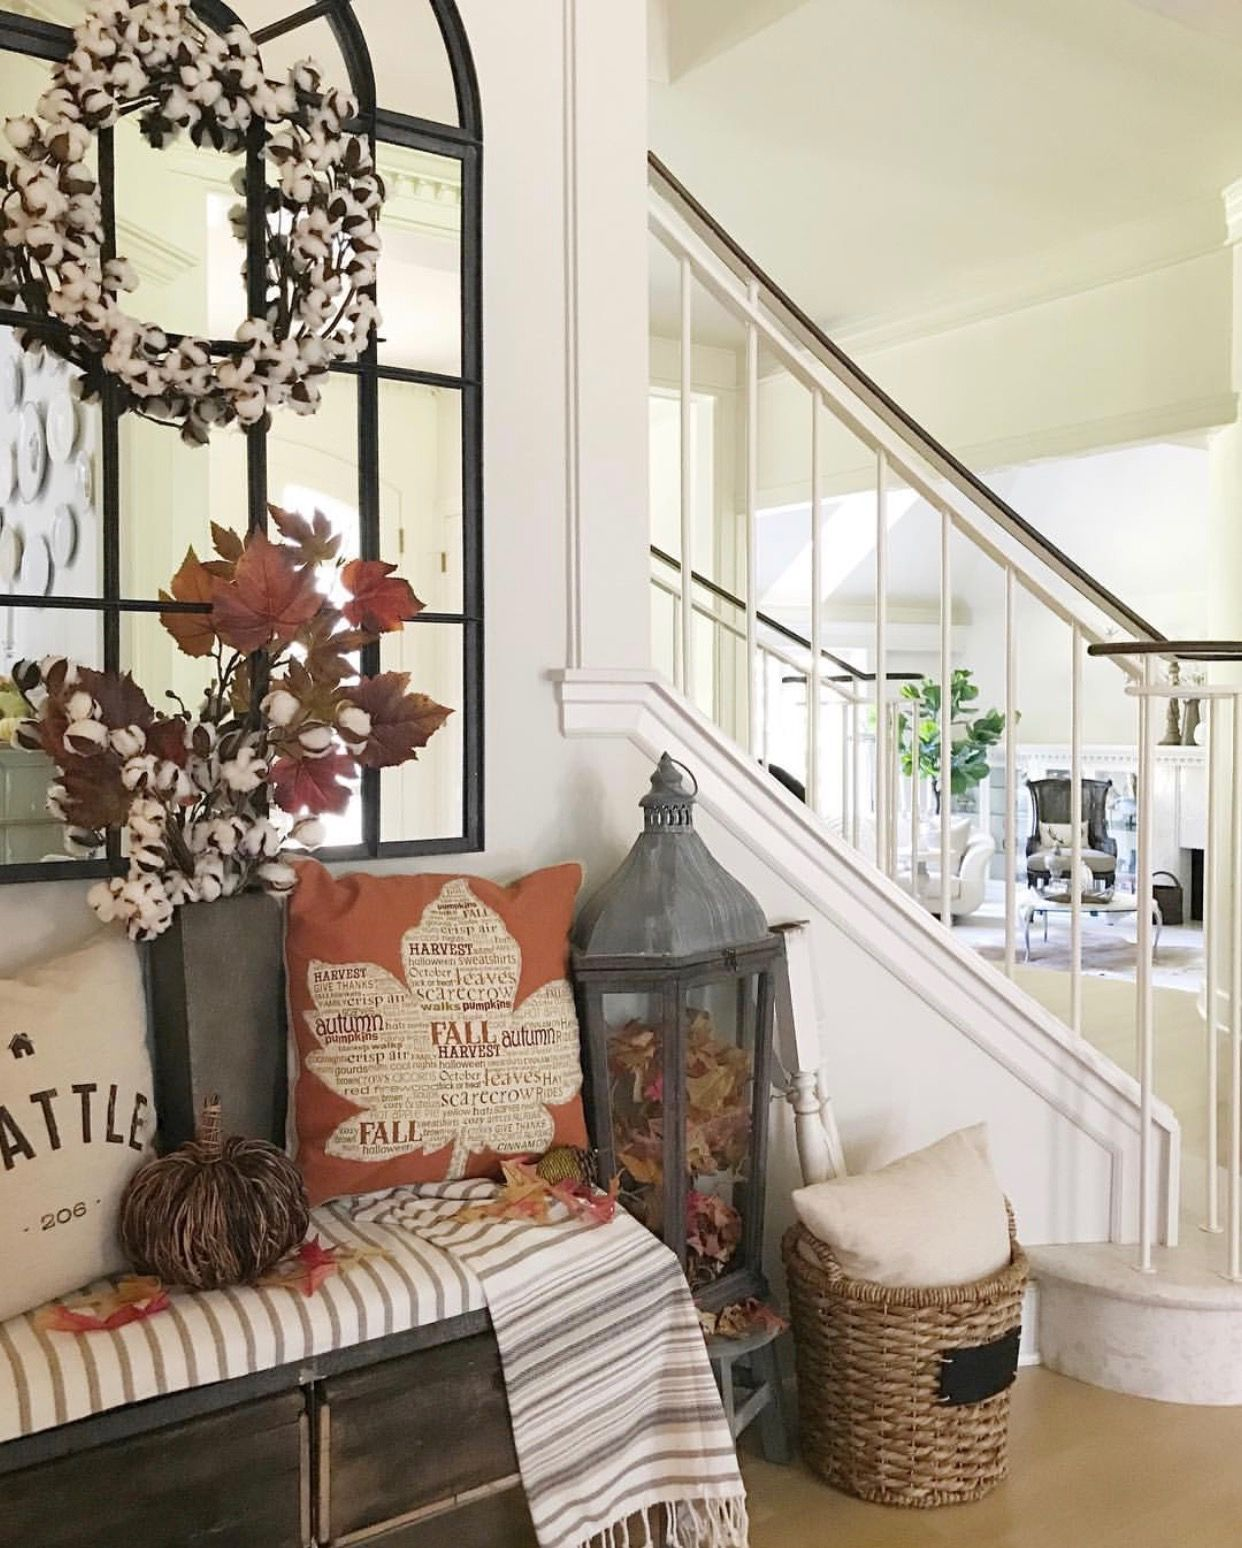 Decorate for fall like a pro with designer tips. The Design Twins share best advice for seasonal decorating u0026 tons of inspiration in their Fall Home Tour & Pin by Debbie Davis on thanksgiving | Pinterest | Decorating DIY ...